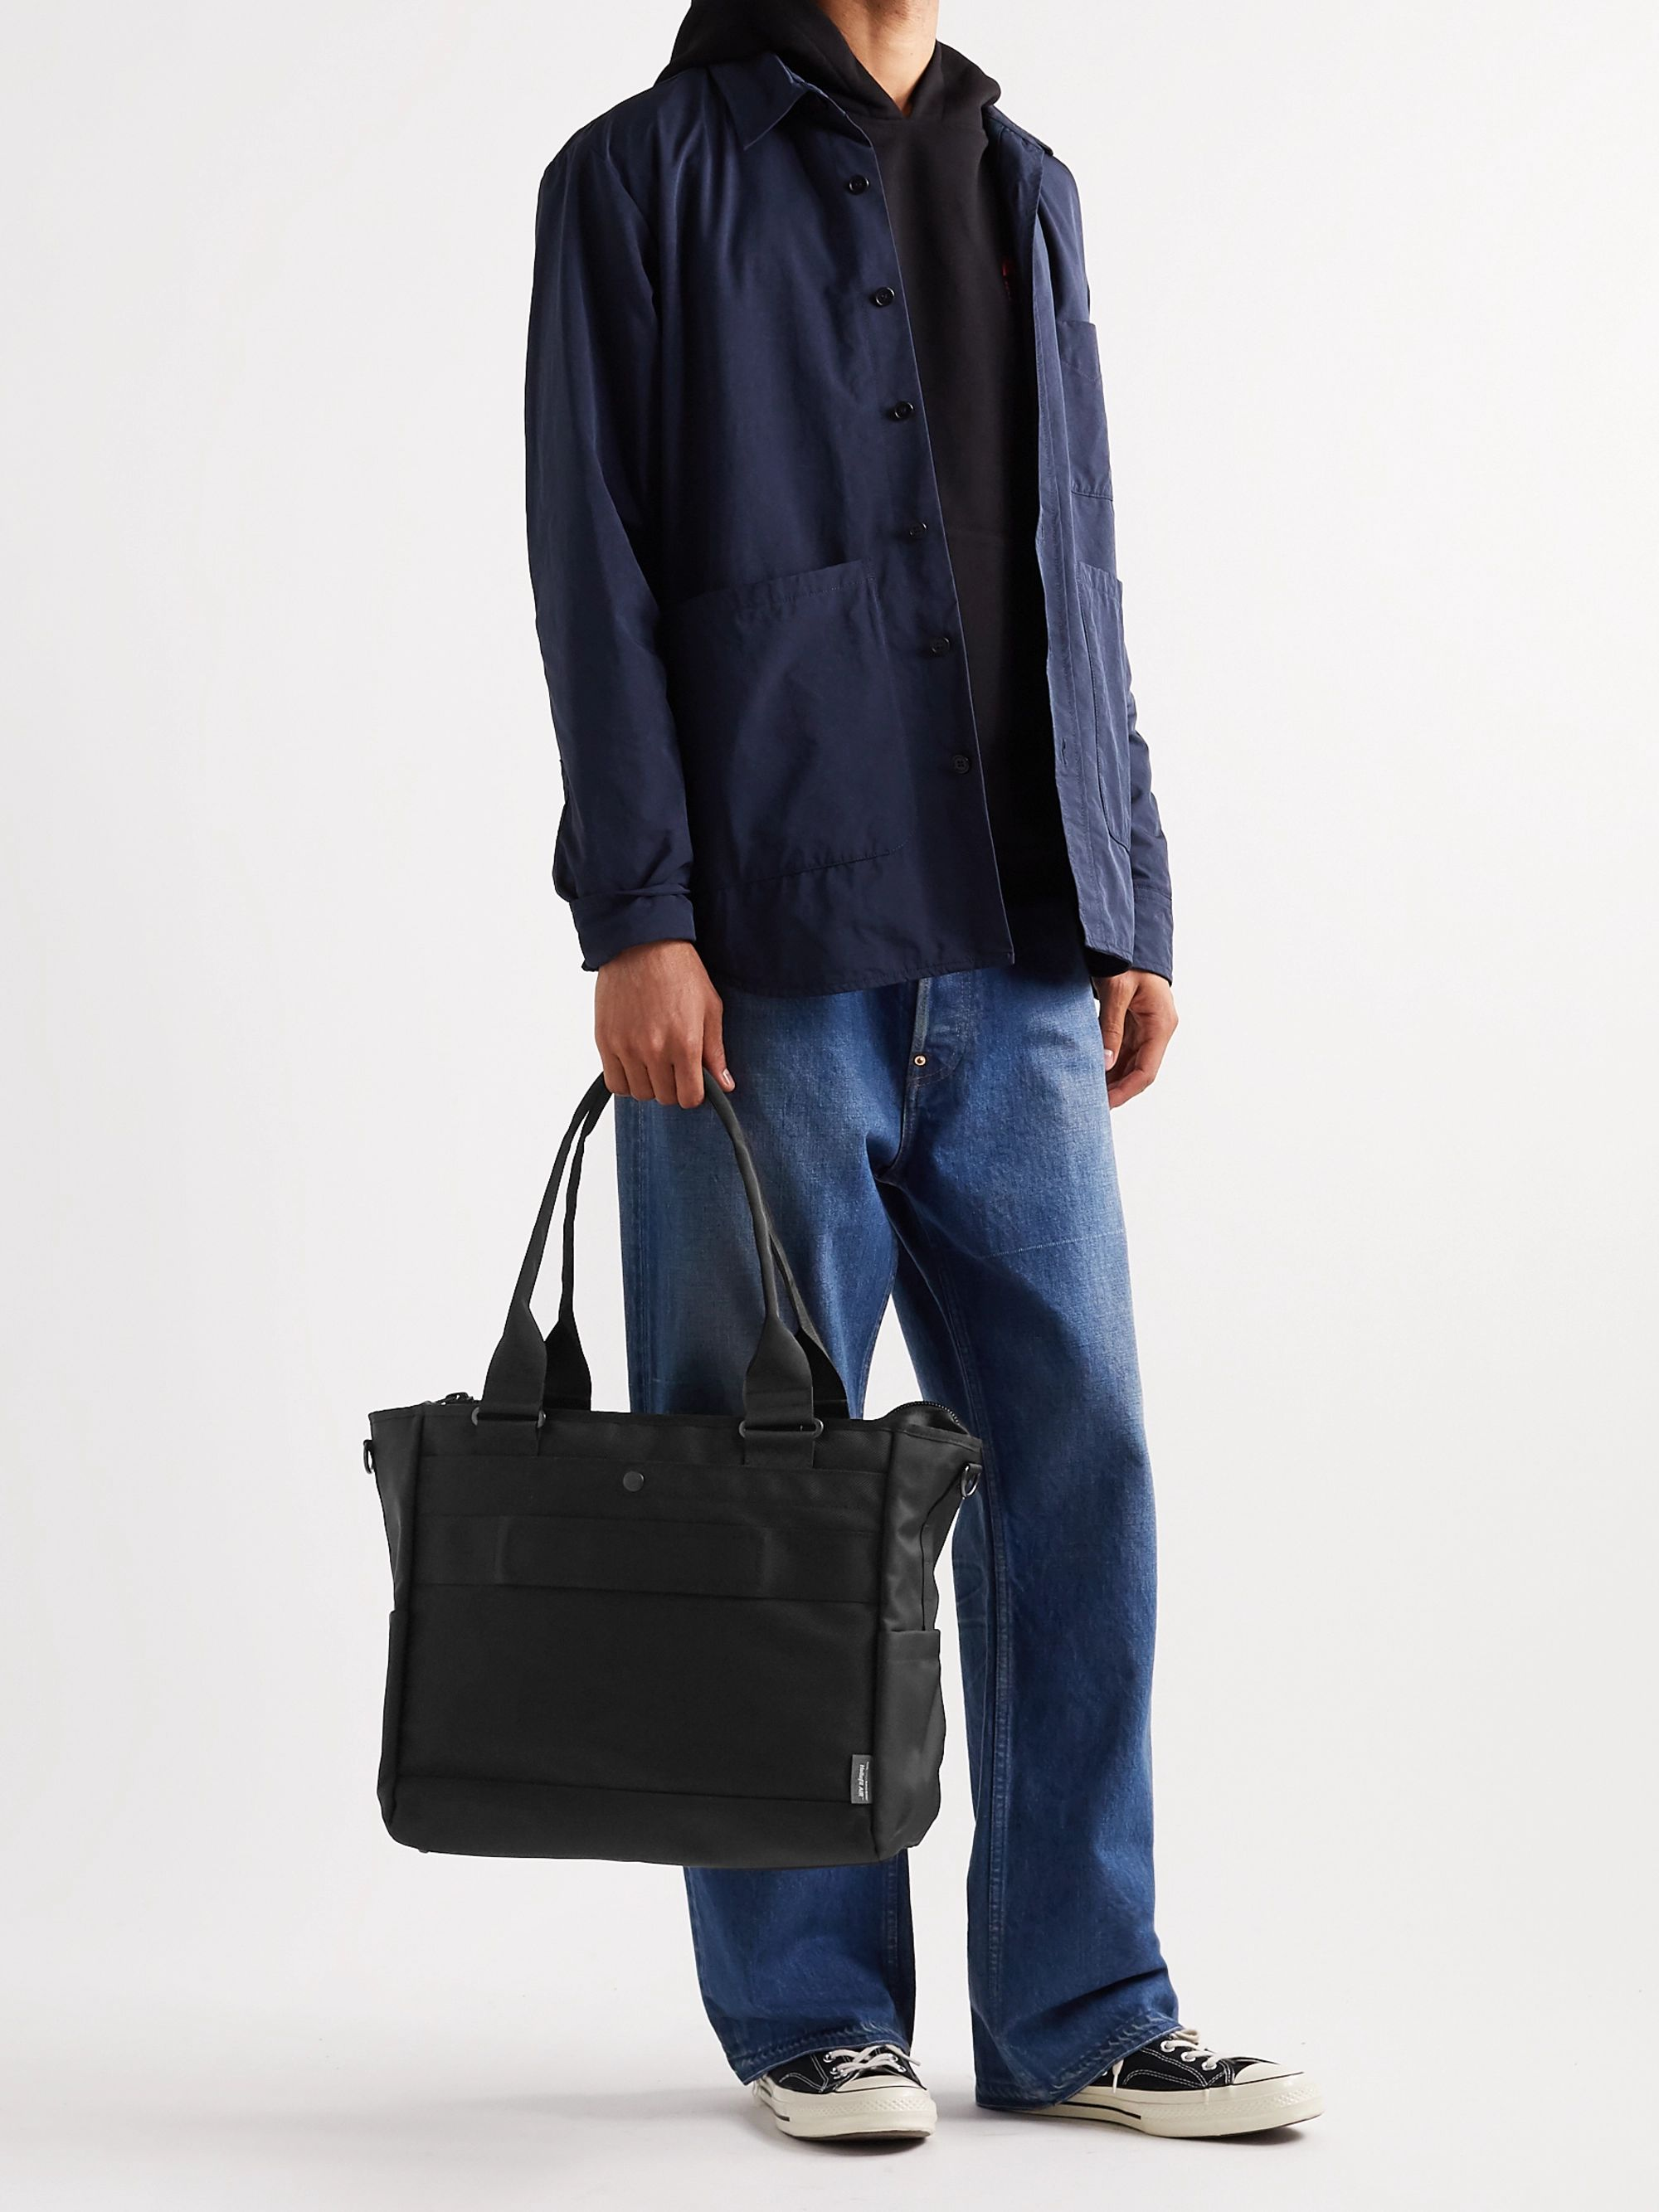 Master-Piece Leather-Trimmed MASTERTEX-08 Tote Bag